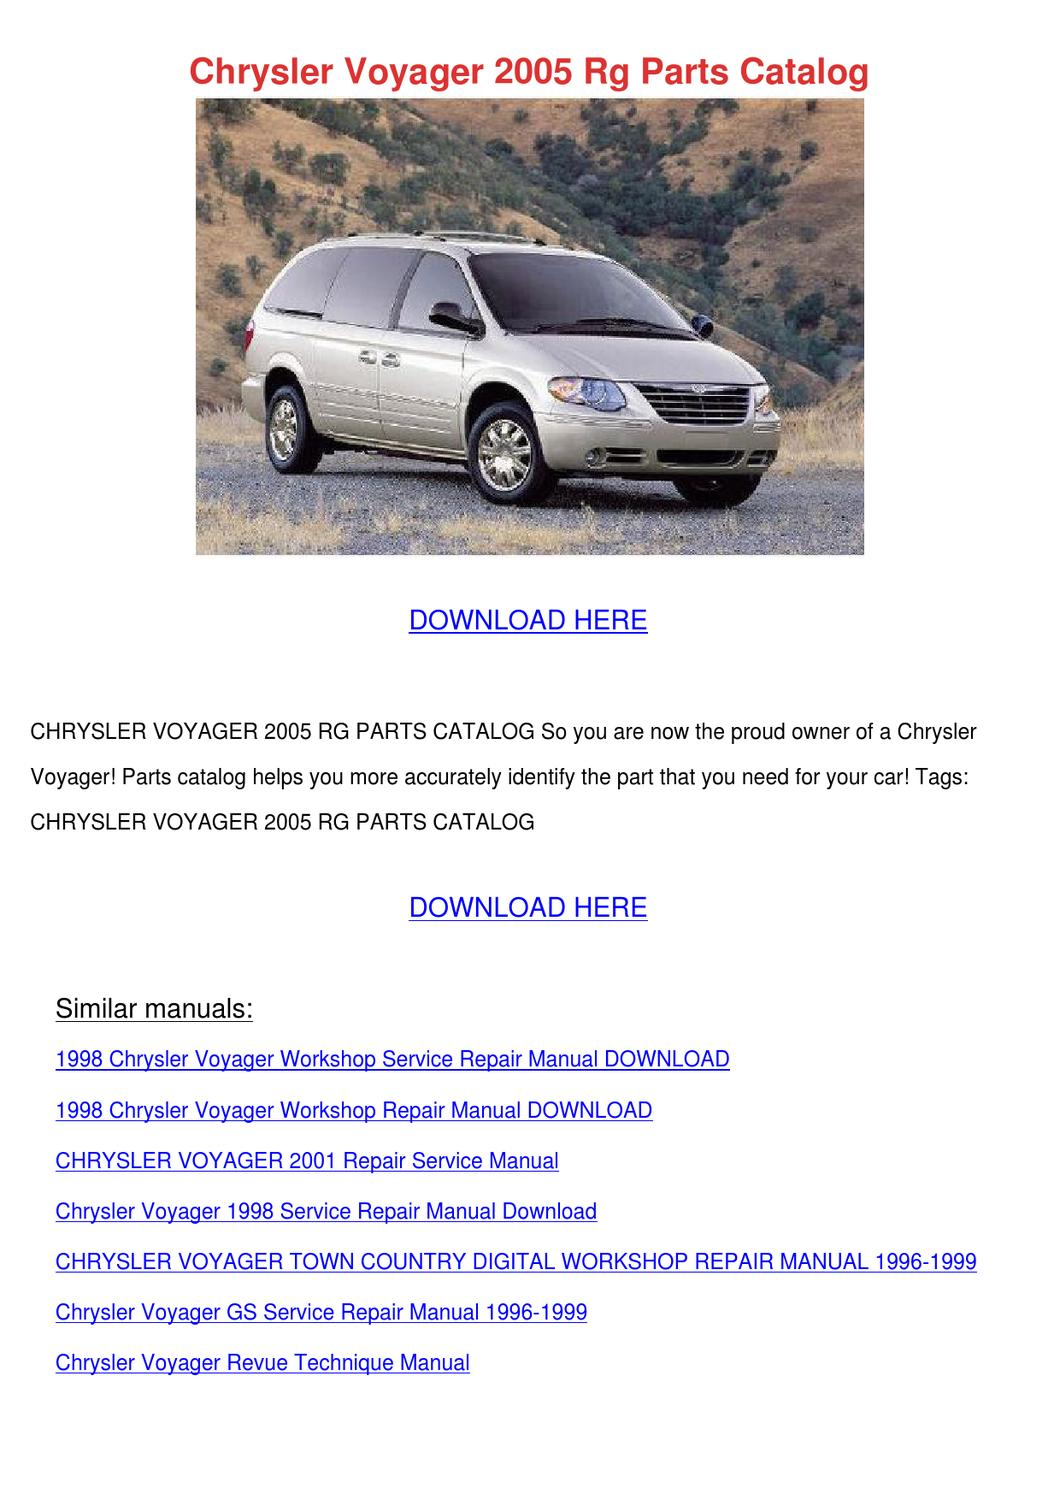 Chrysler Voyager 2005 Rg Parts Catalog by PhilippPeltier - issuu